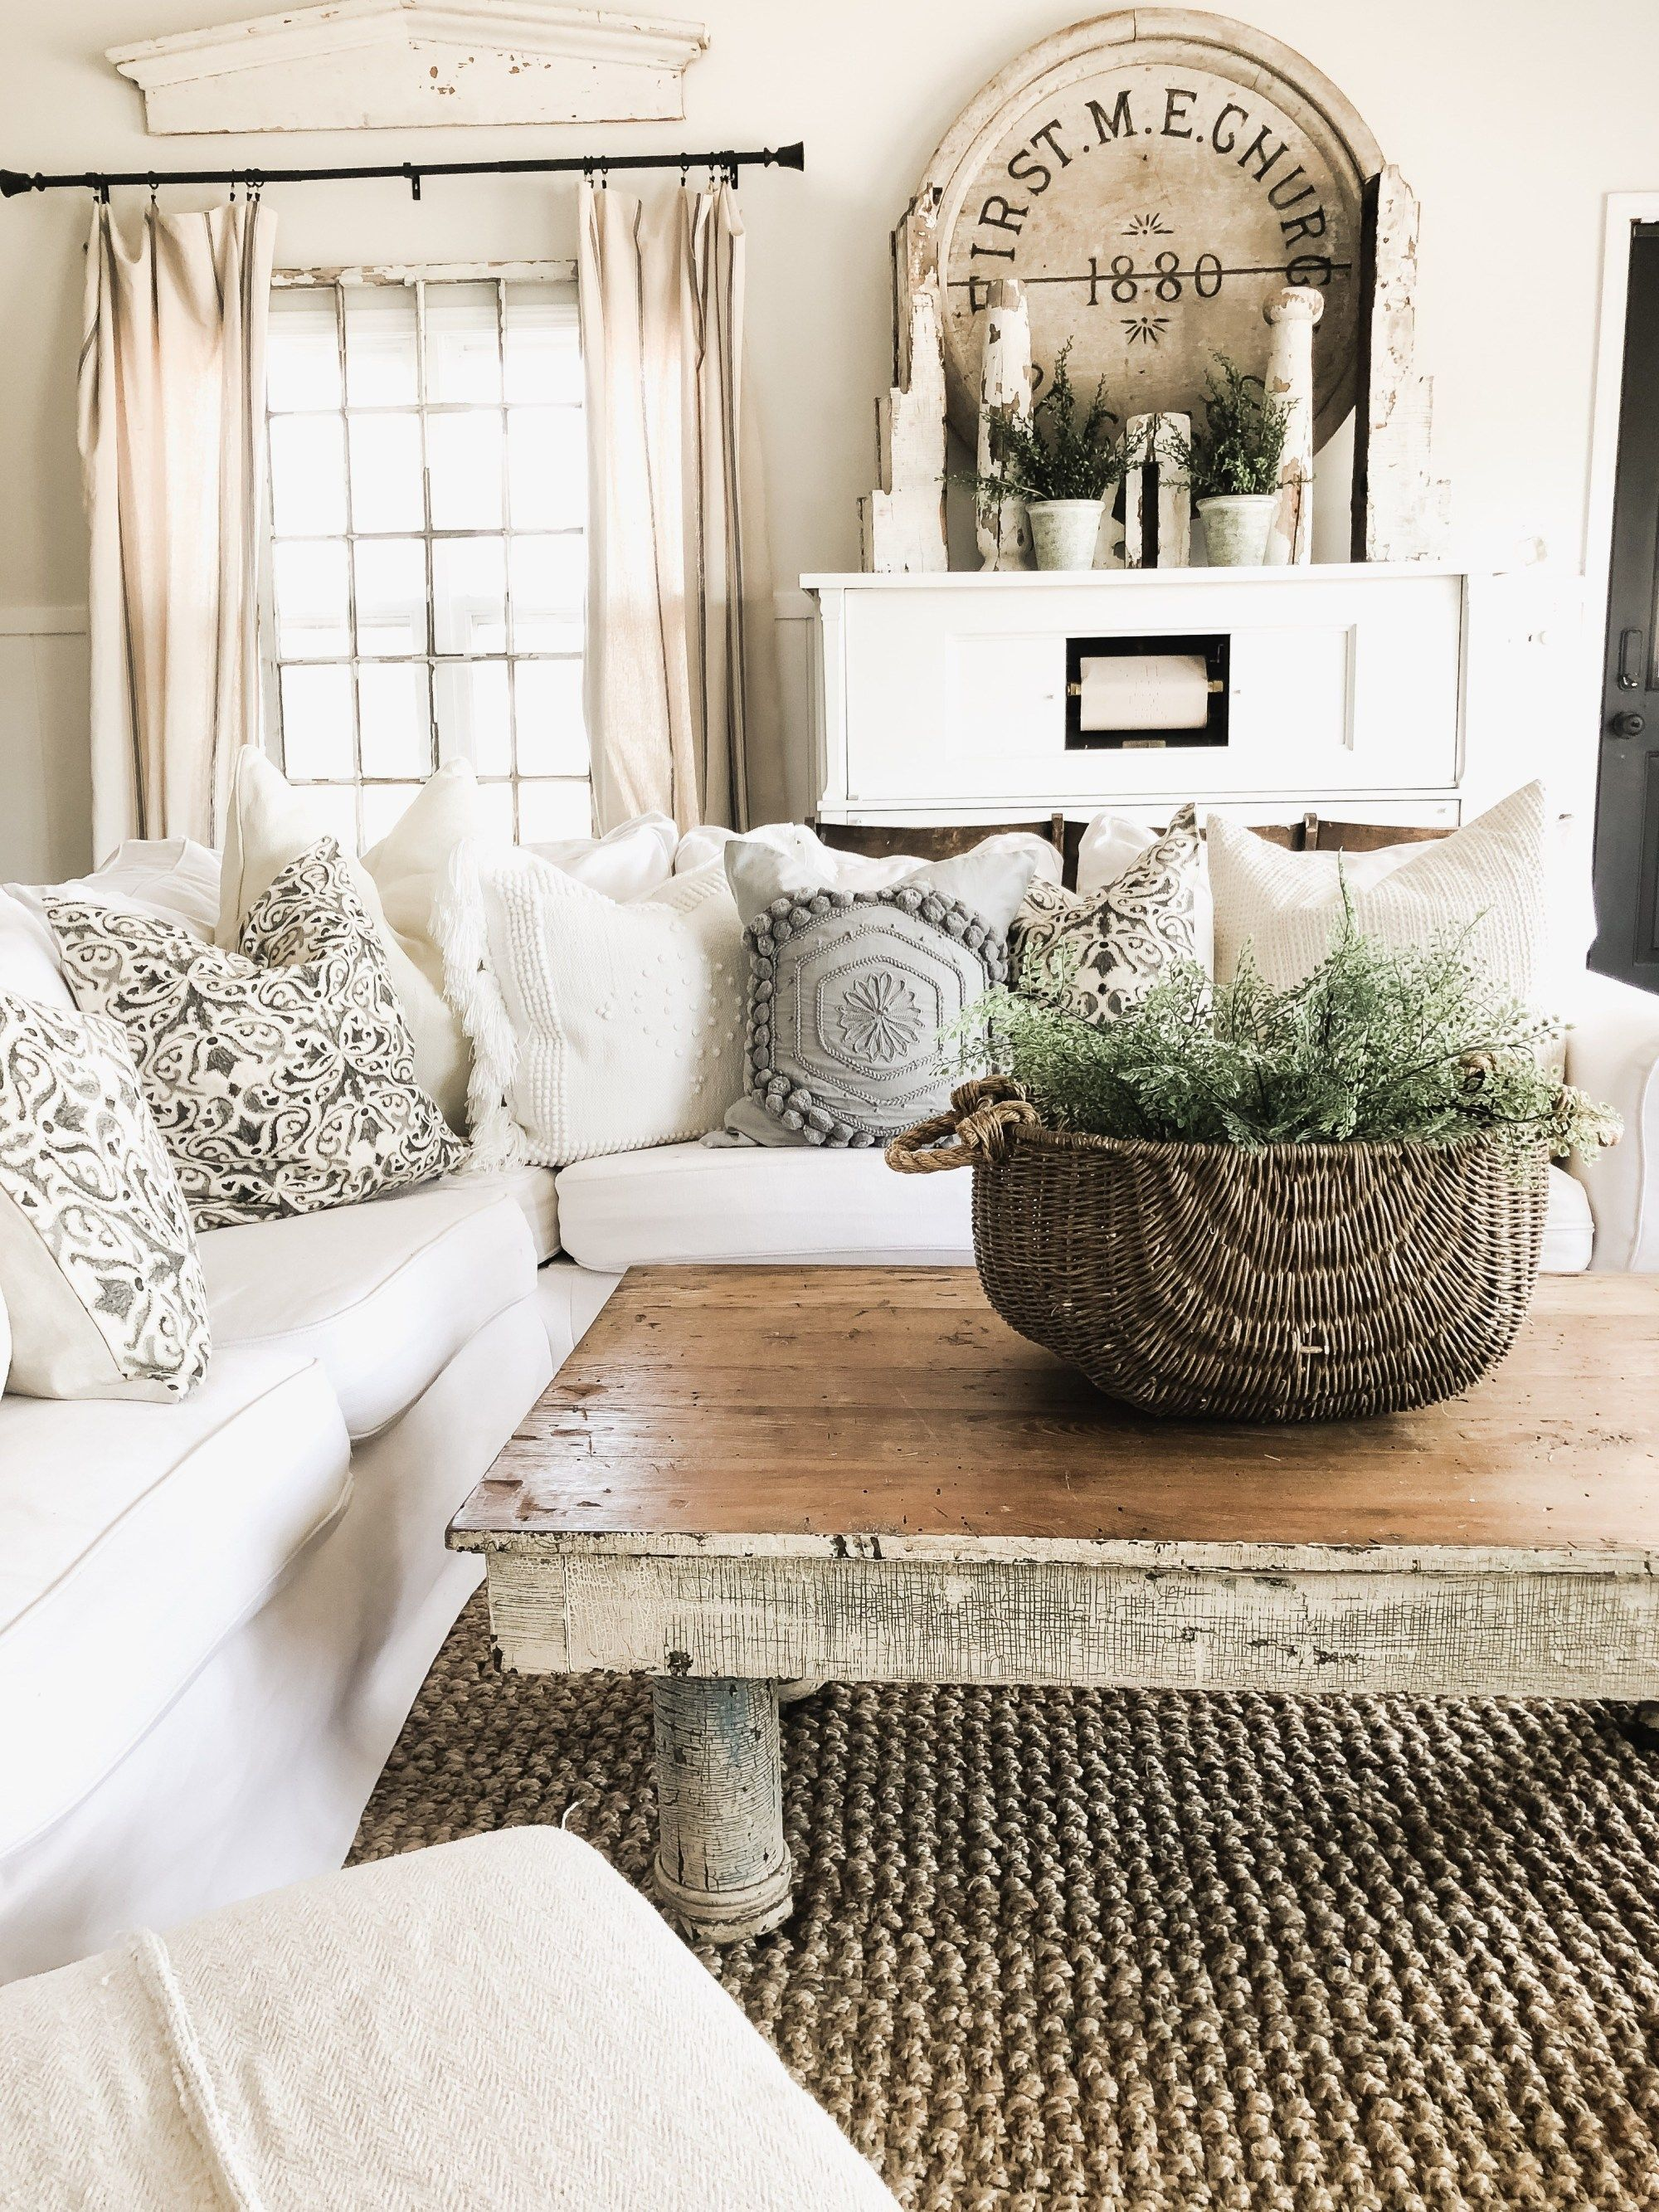 201 Help Me Decorate My Living Room 2021 In 2020 Farmhouse Decor